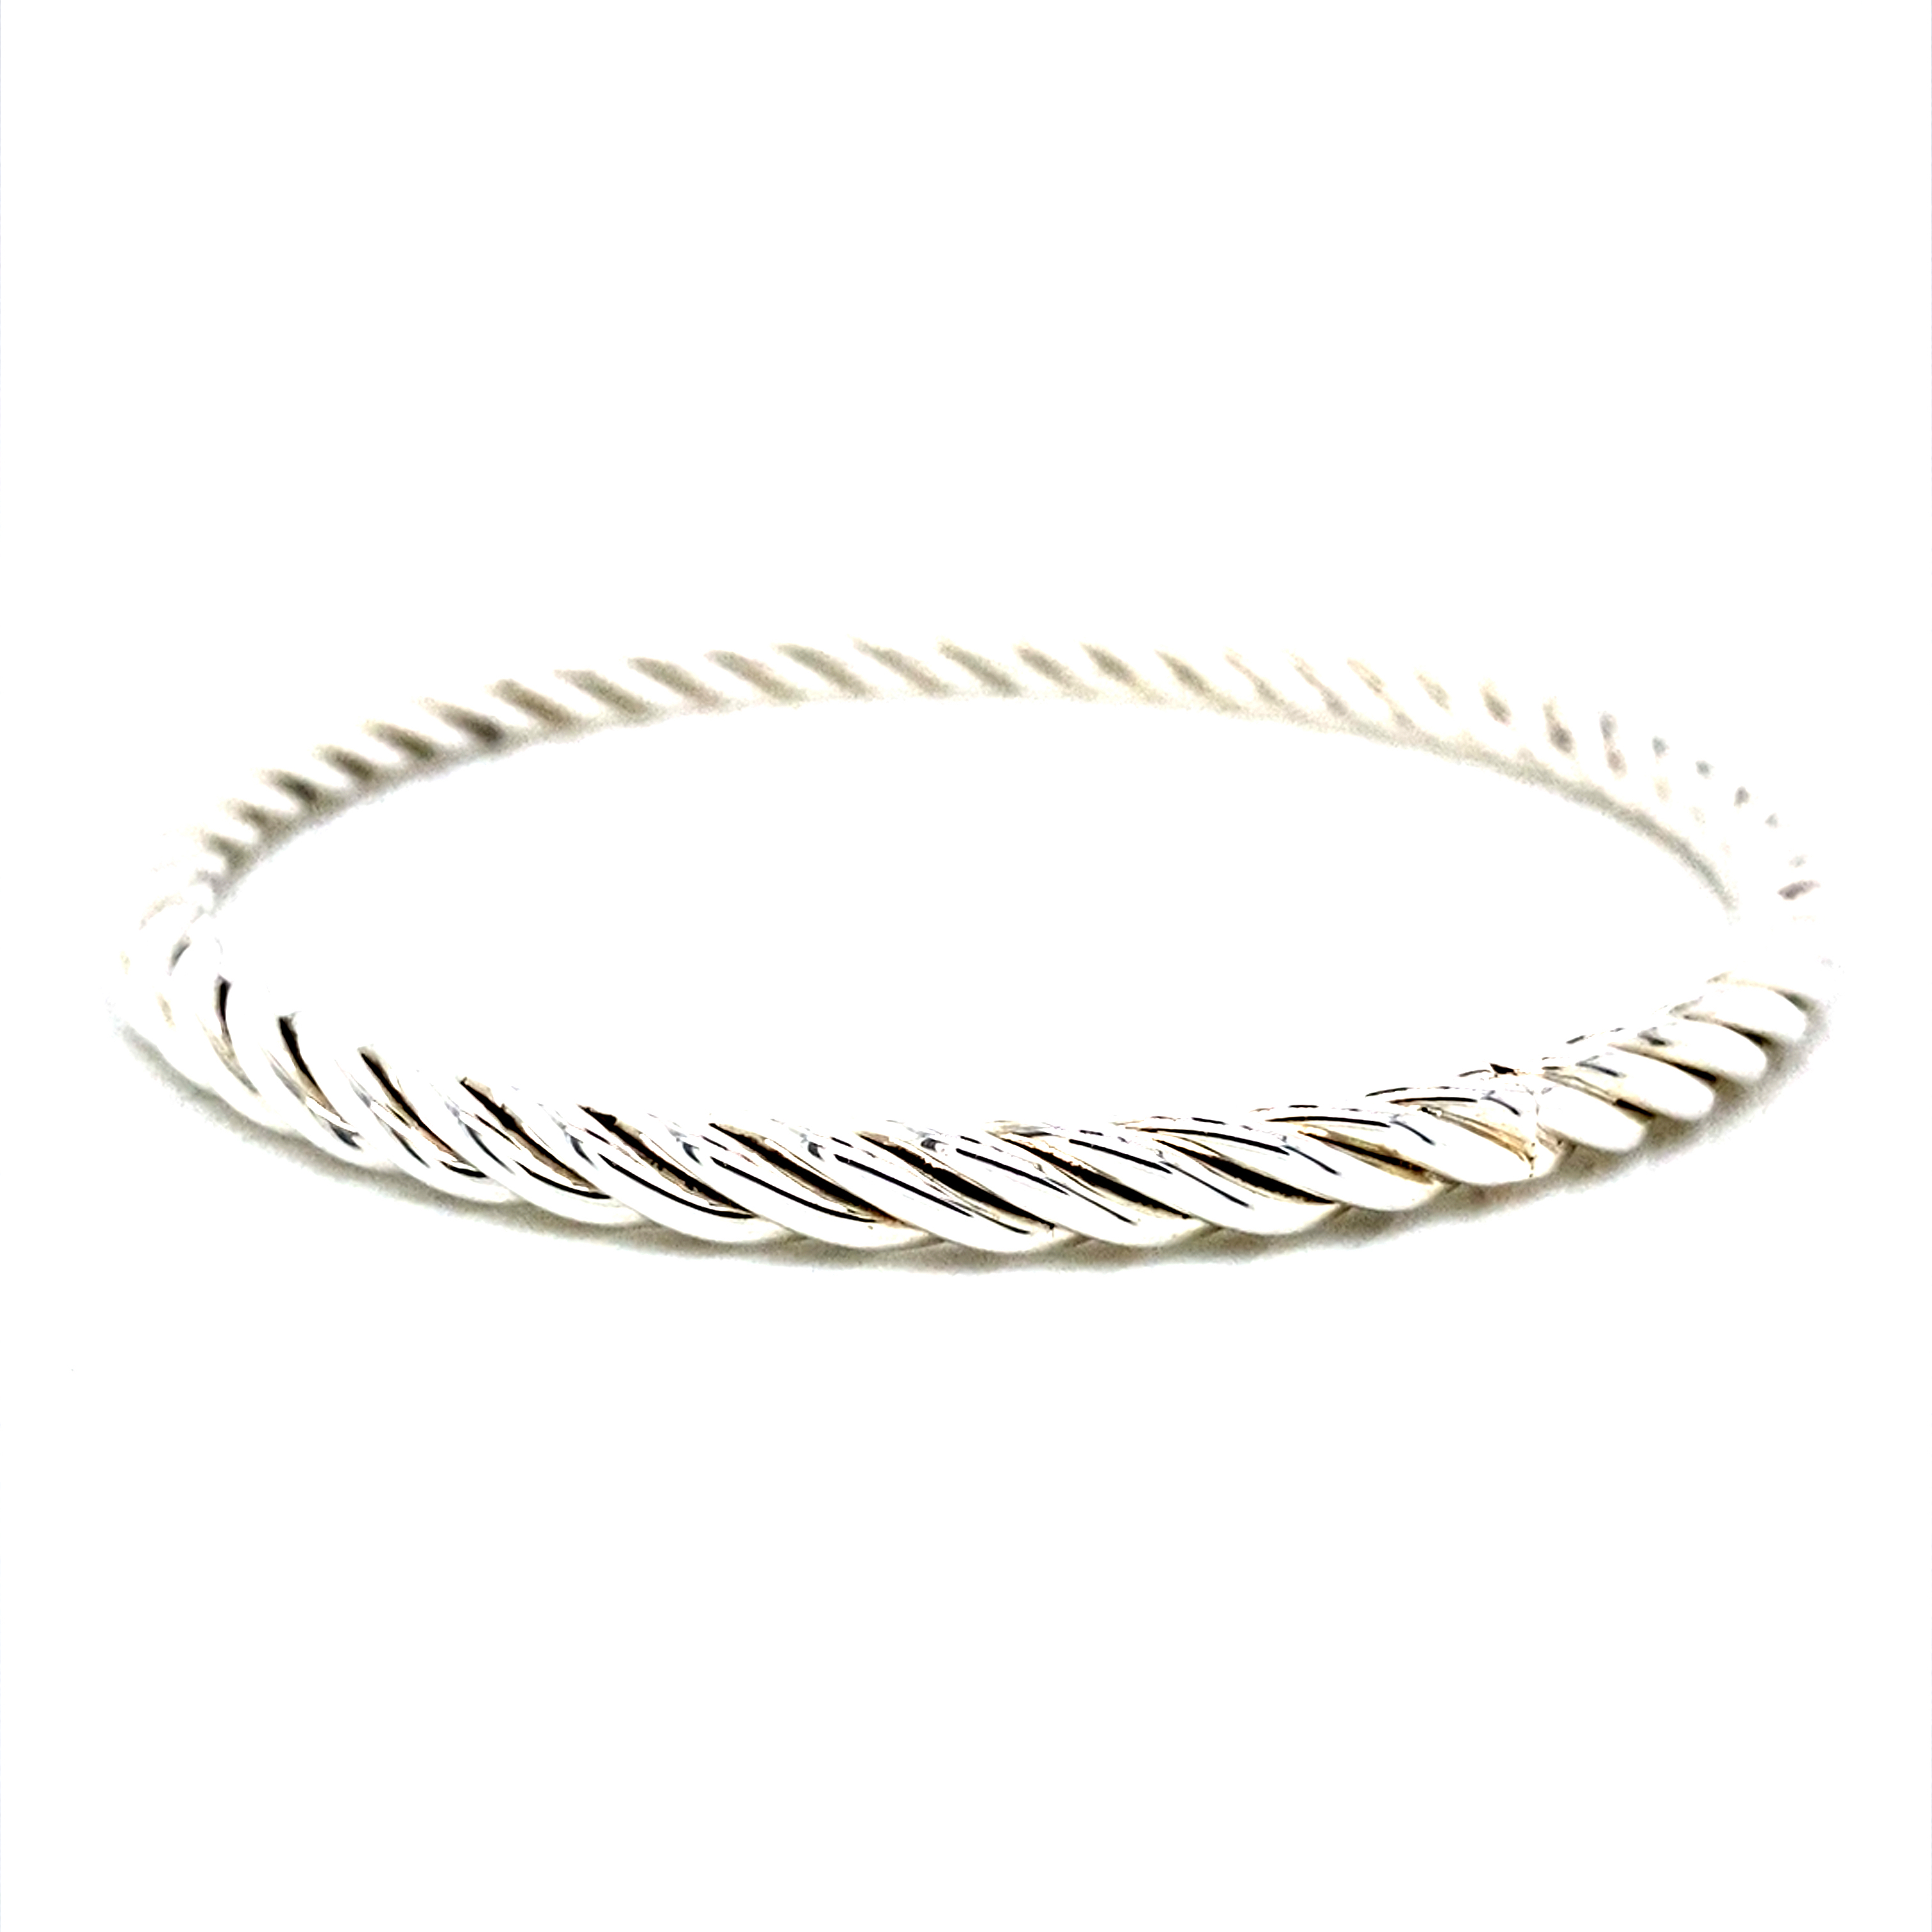 Sterling silver bangle in twisted rope design